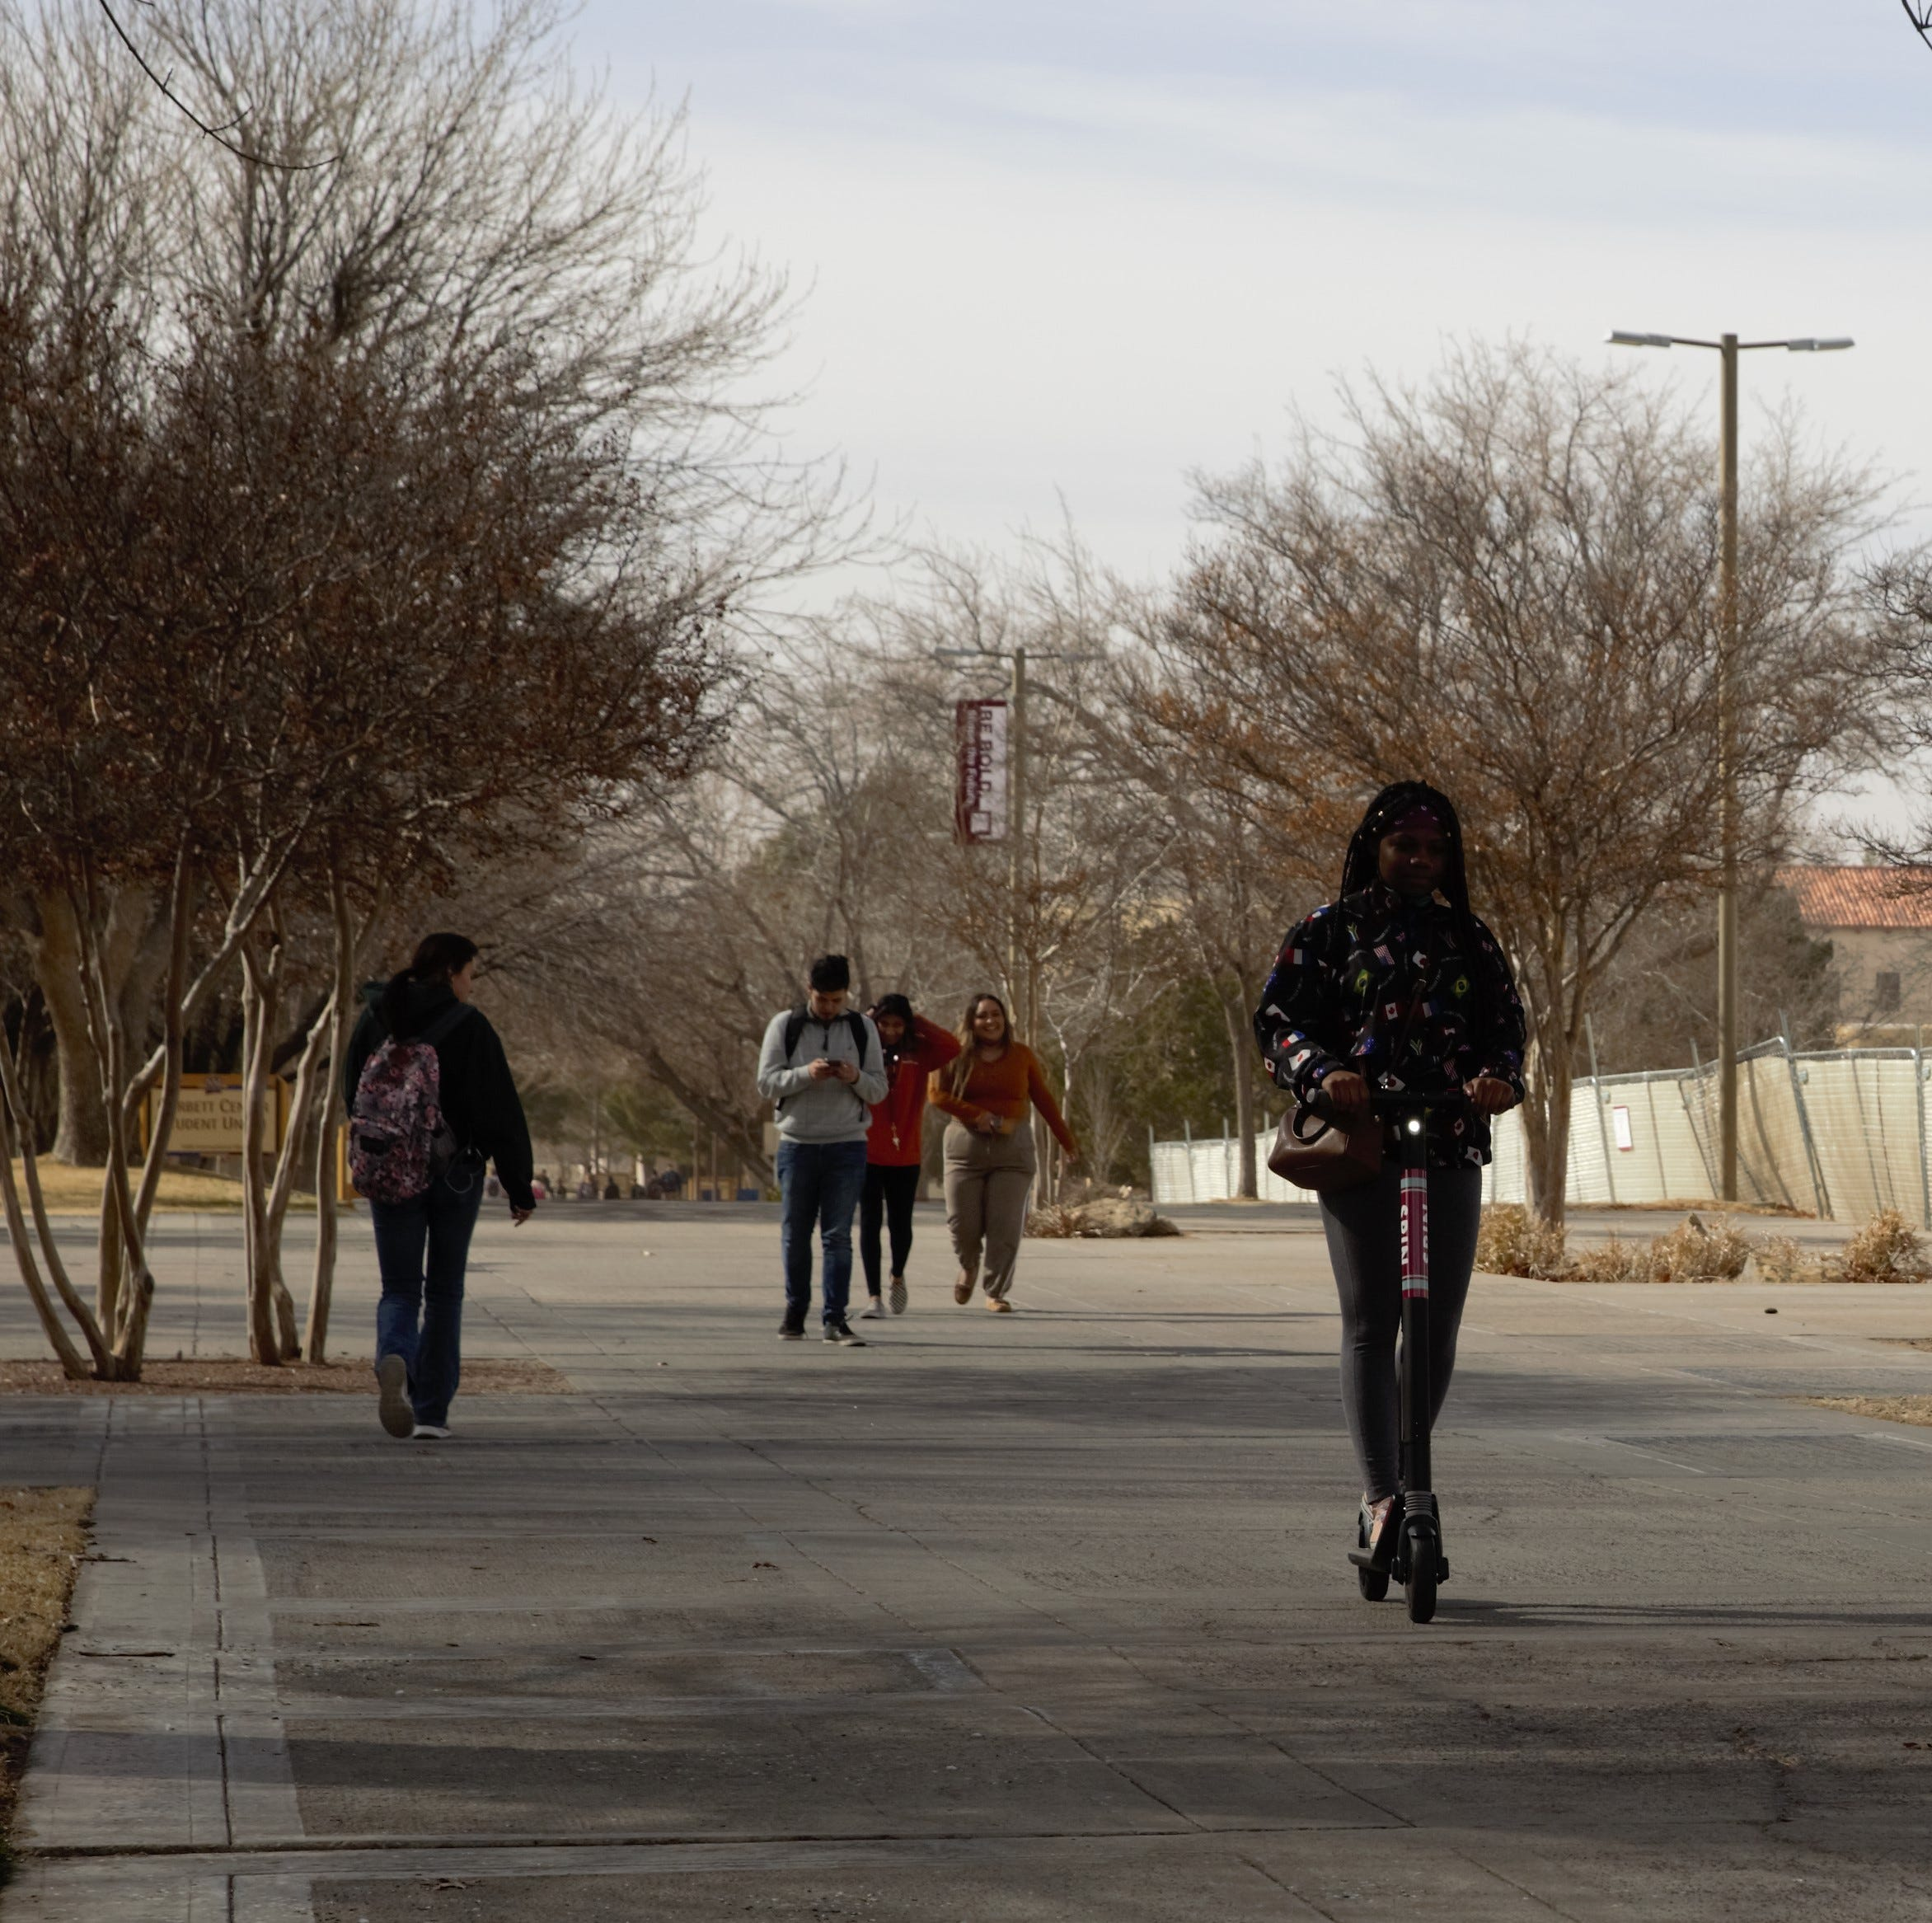 Spin scooters return to NMSU campus after dispute resolved